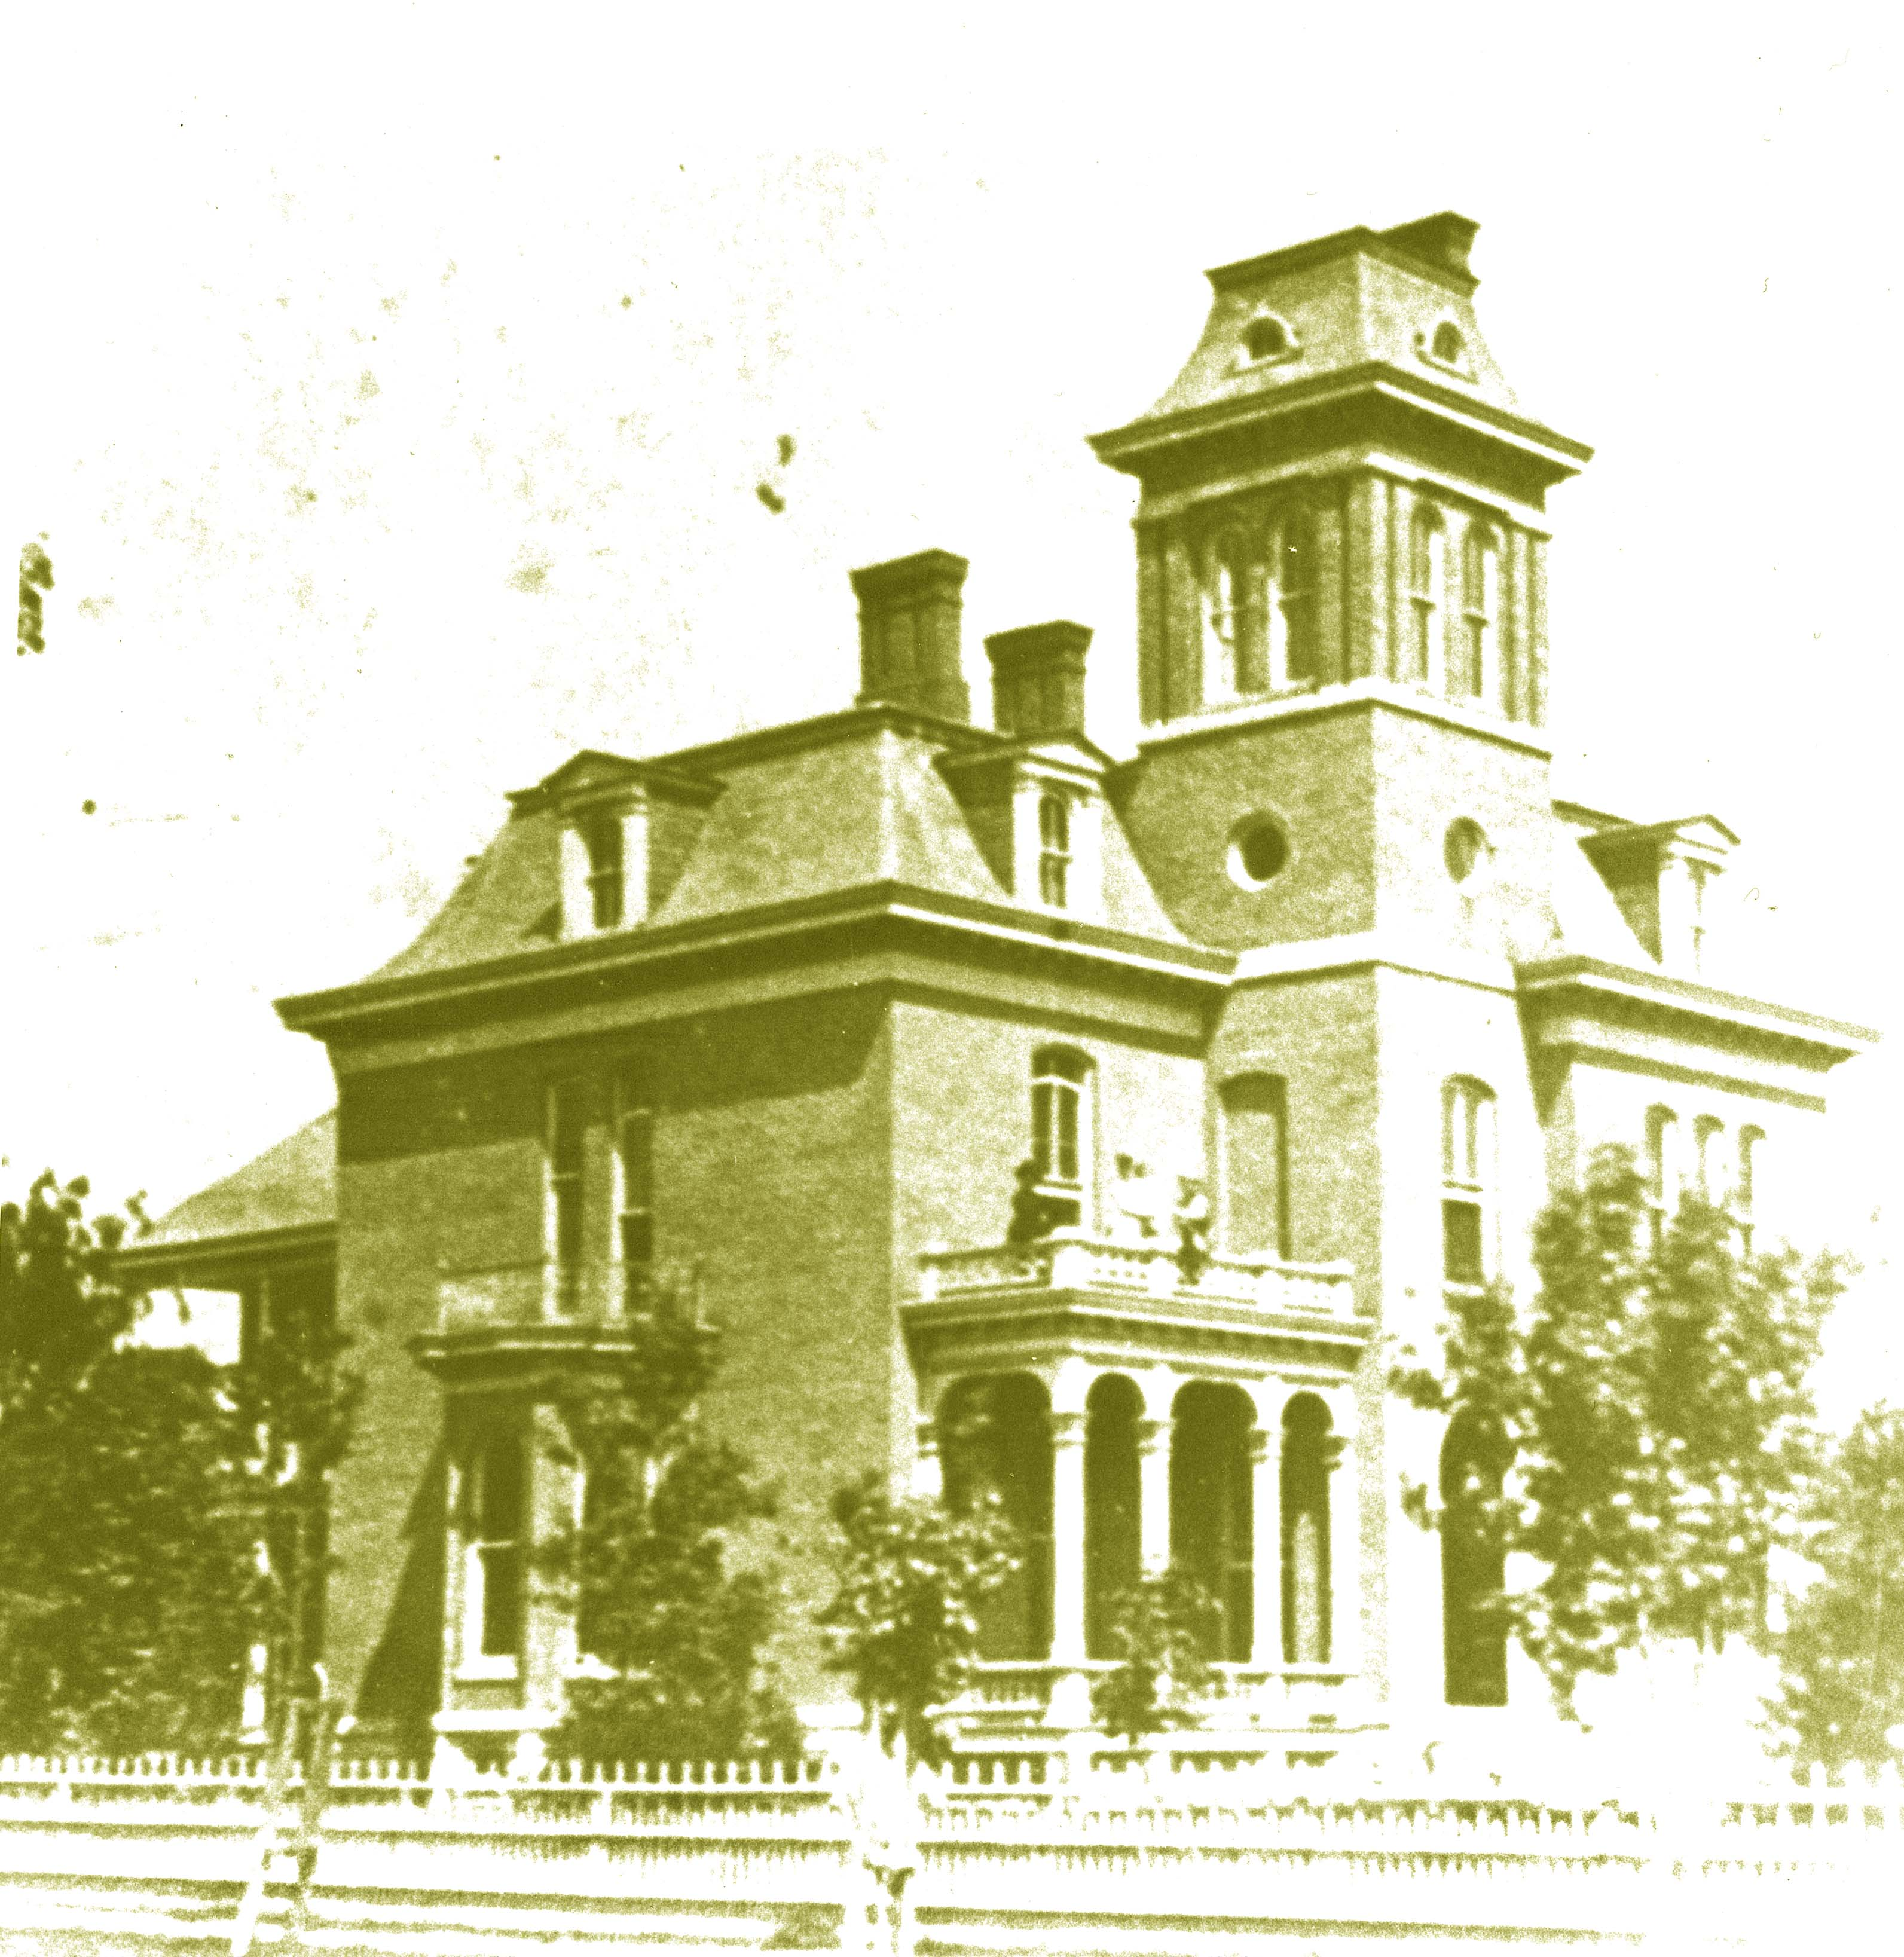 Earliest Photo of the house